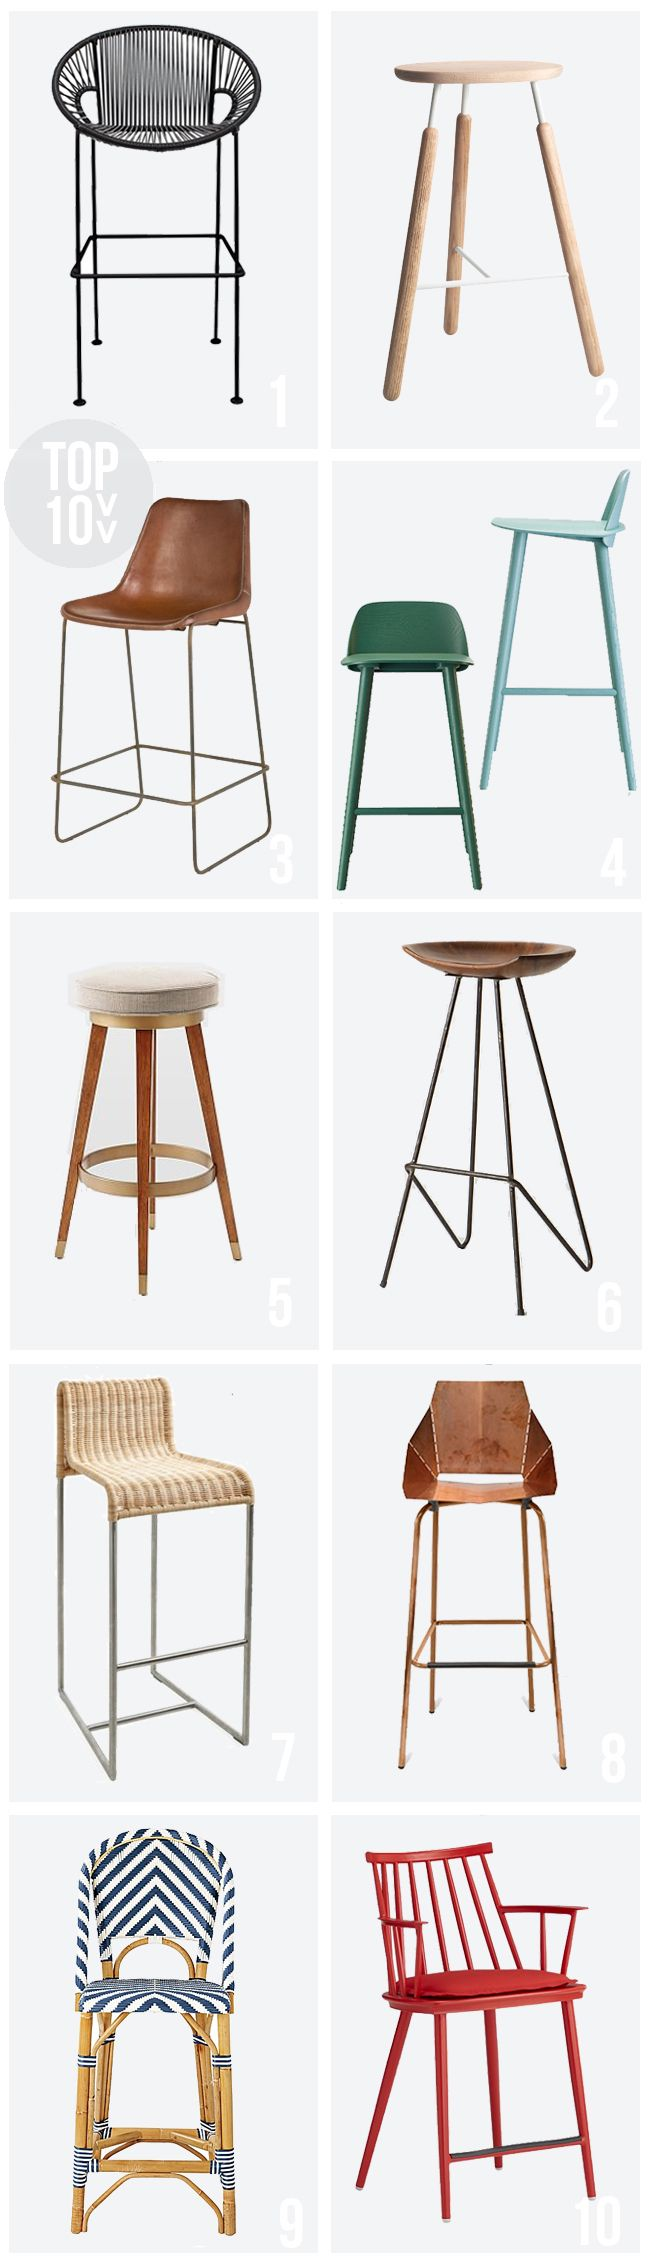 I like the blue and green ones, also the white dipped wood stool